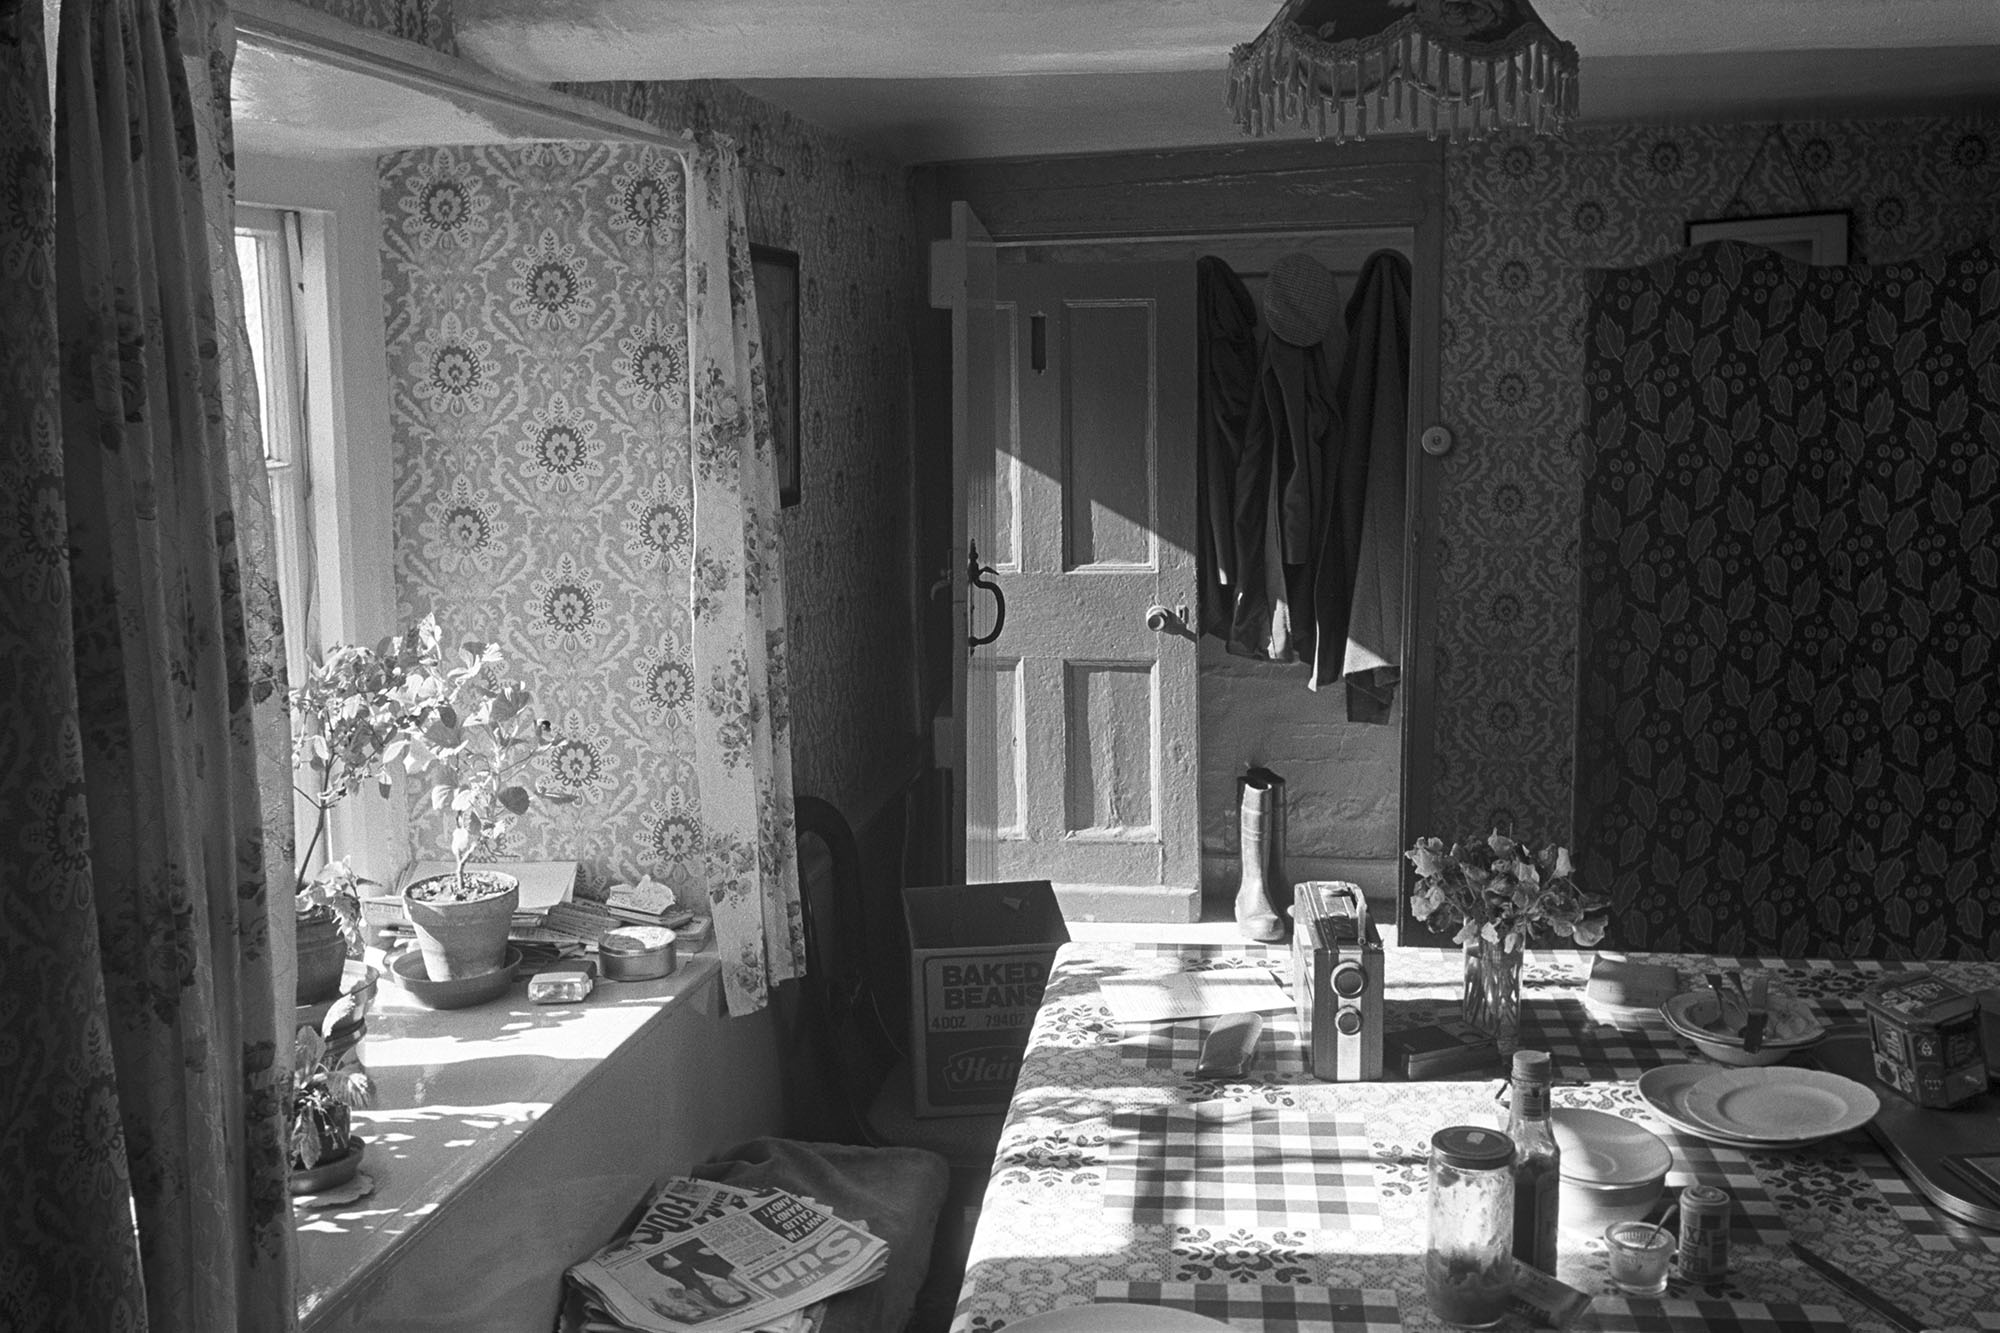 Cottage kitchen in sunlight, Mariansleigh, 1985